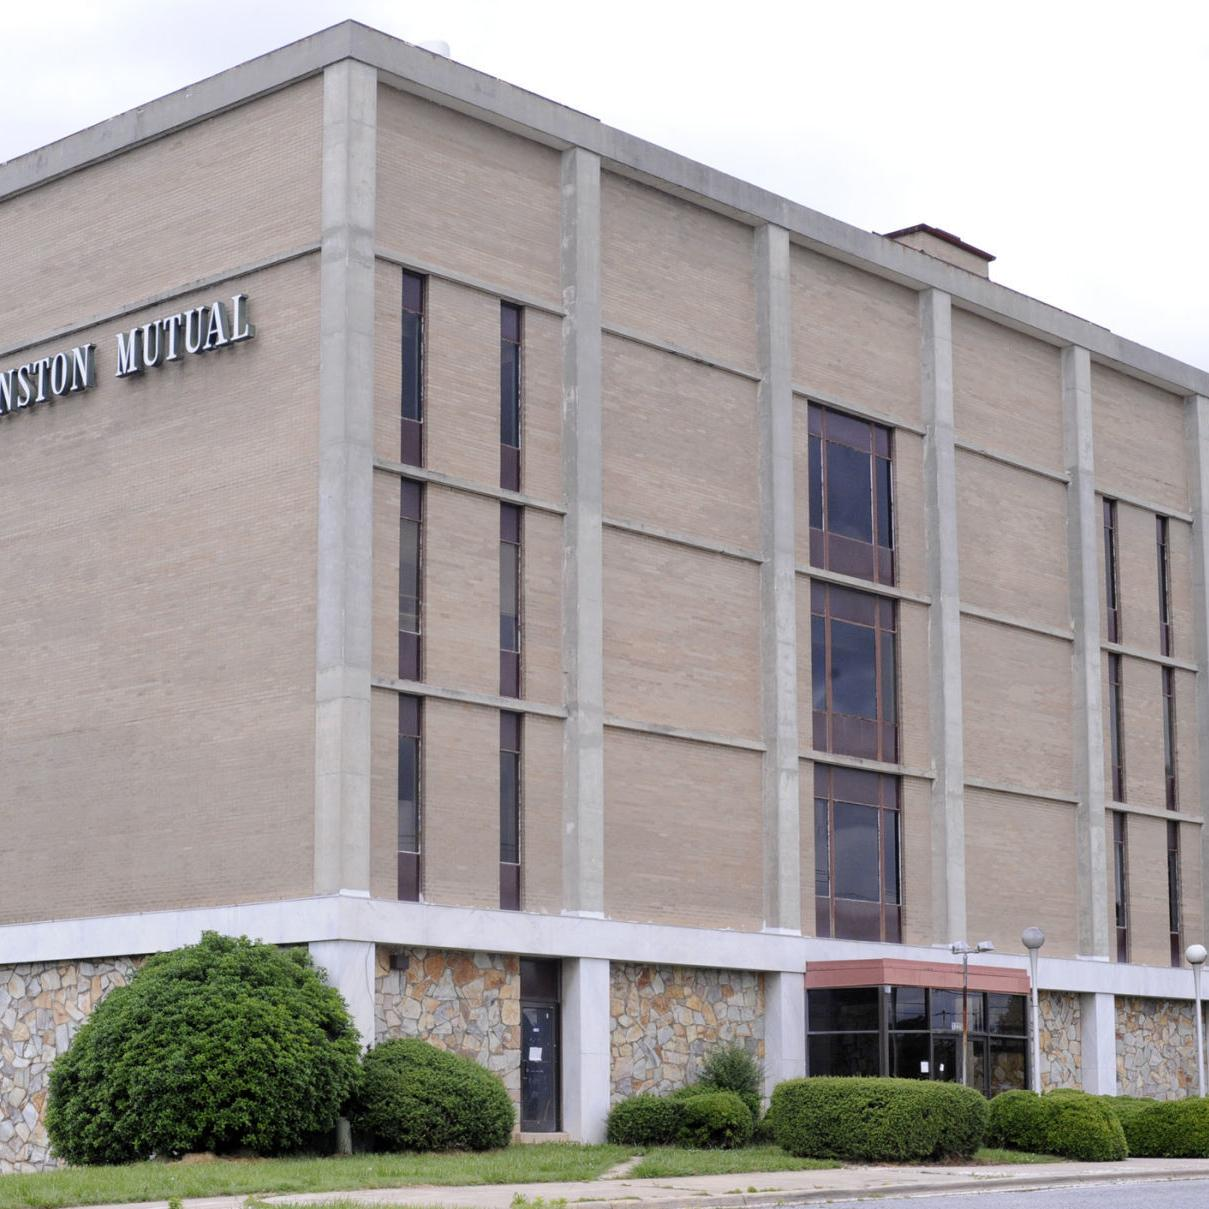 Winston Mutual Building Sells For 710 000 To Local Group East Winston Landmark Was Built In 1969 Business News Journalnow Com